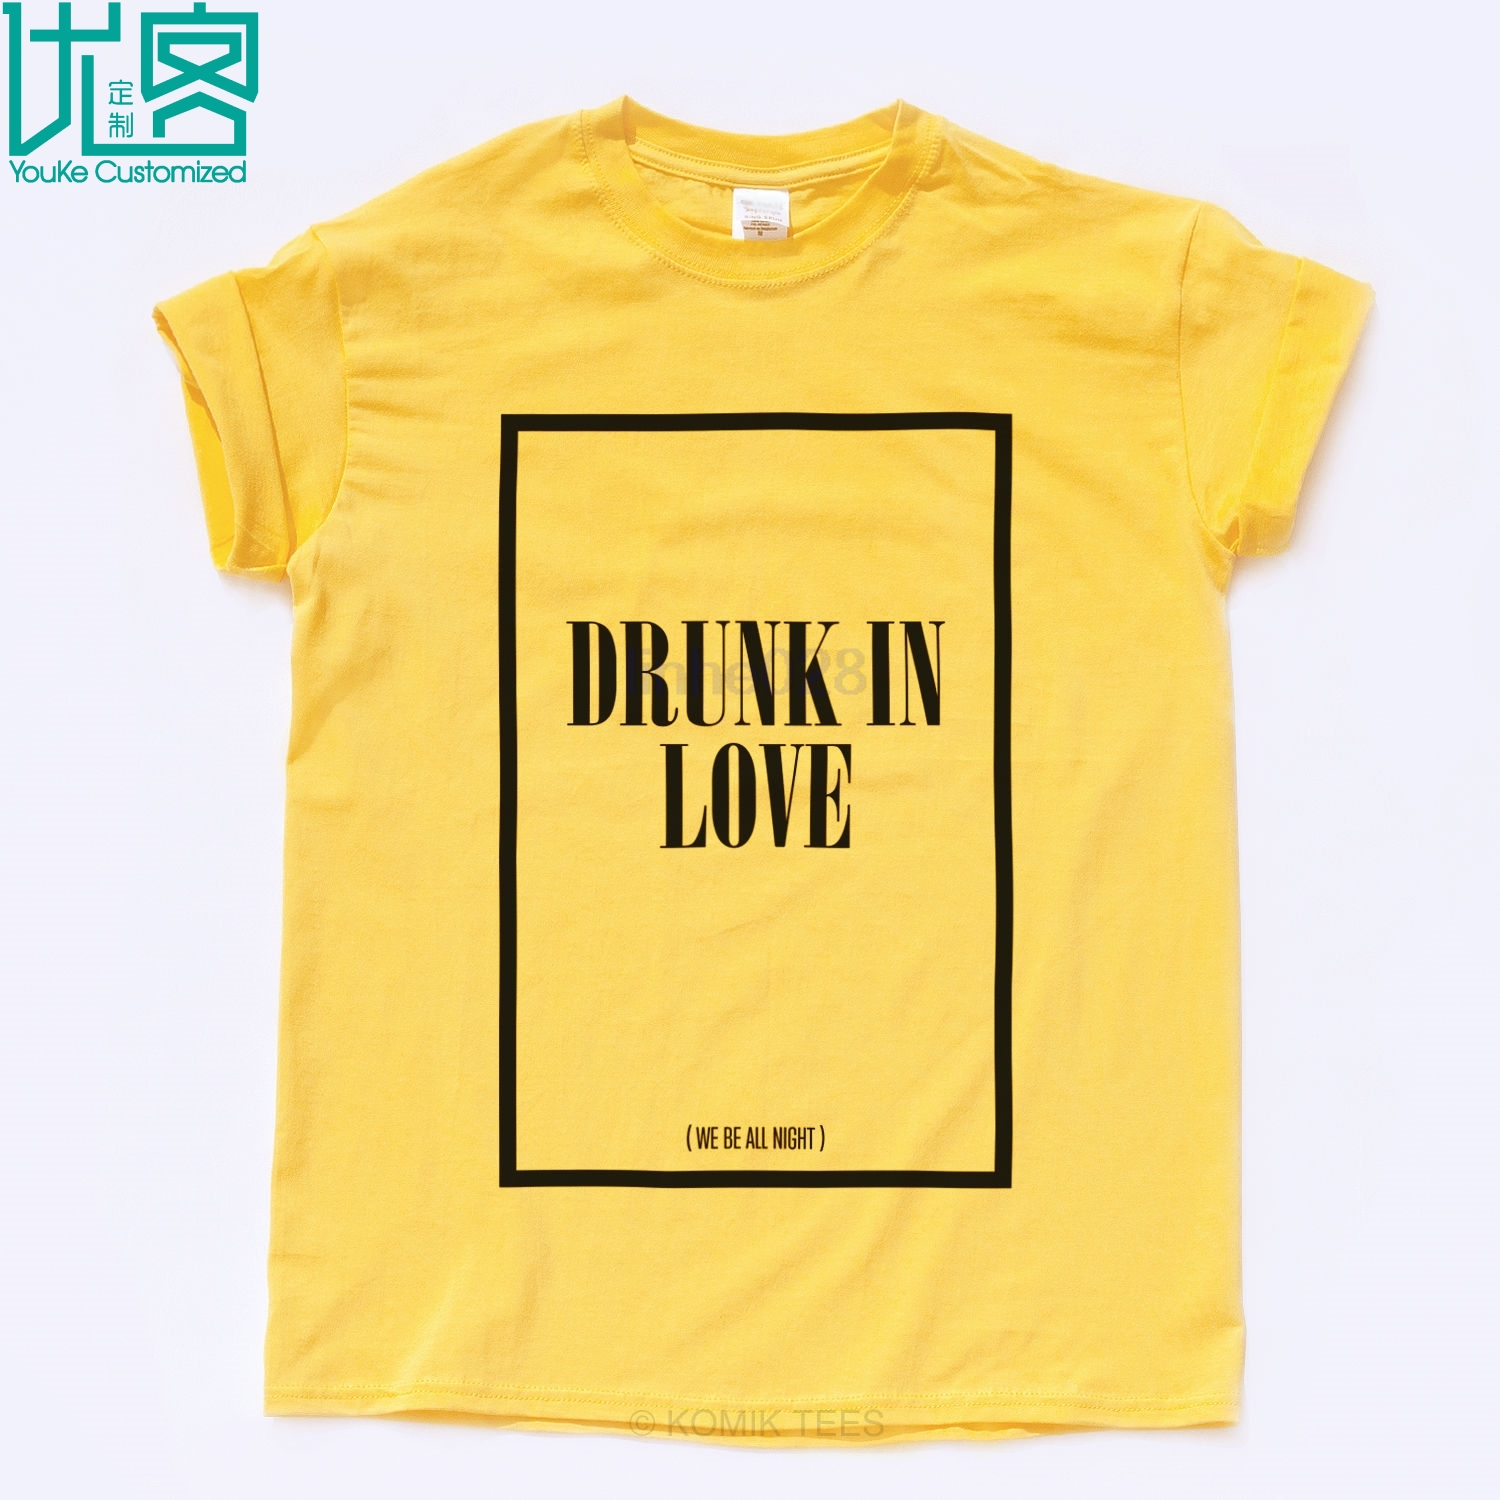 DRUNK IN LOVE FLAWLESS T SHIRT Beyonce Surfboard Swag Jay Z Illuminati Music Top image